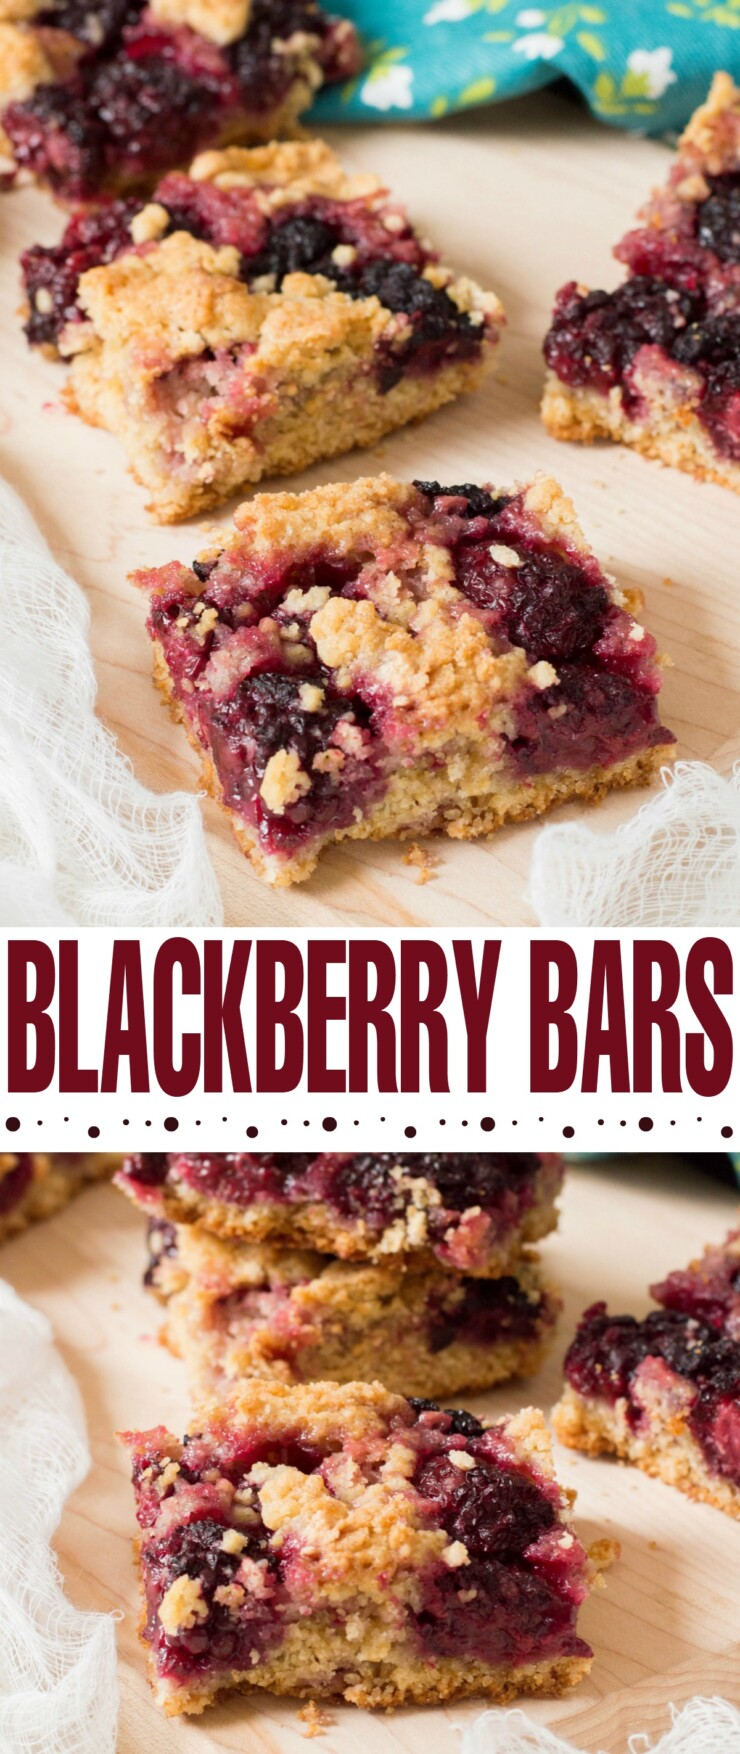 These blackberry bars are made with fresh blackberries - a delicious dessert paired with a hot mug of coffee on a summer evening.